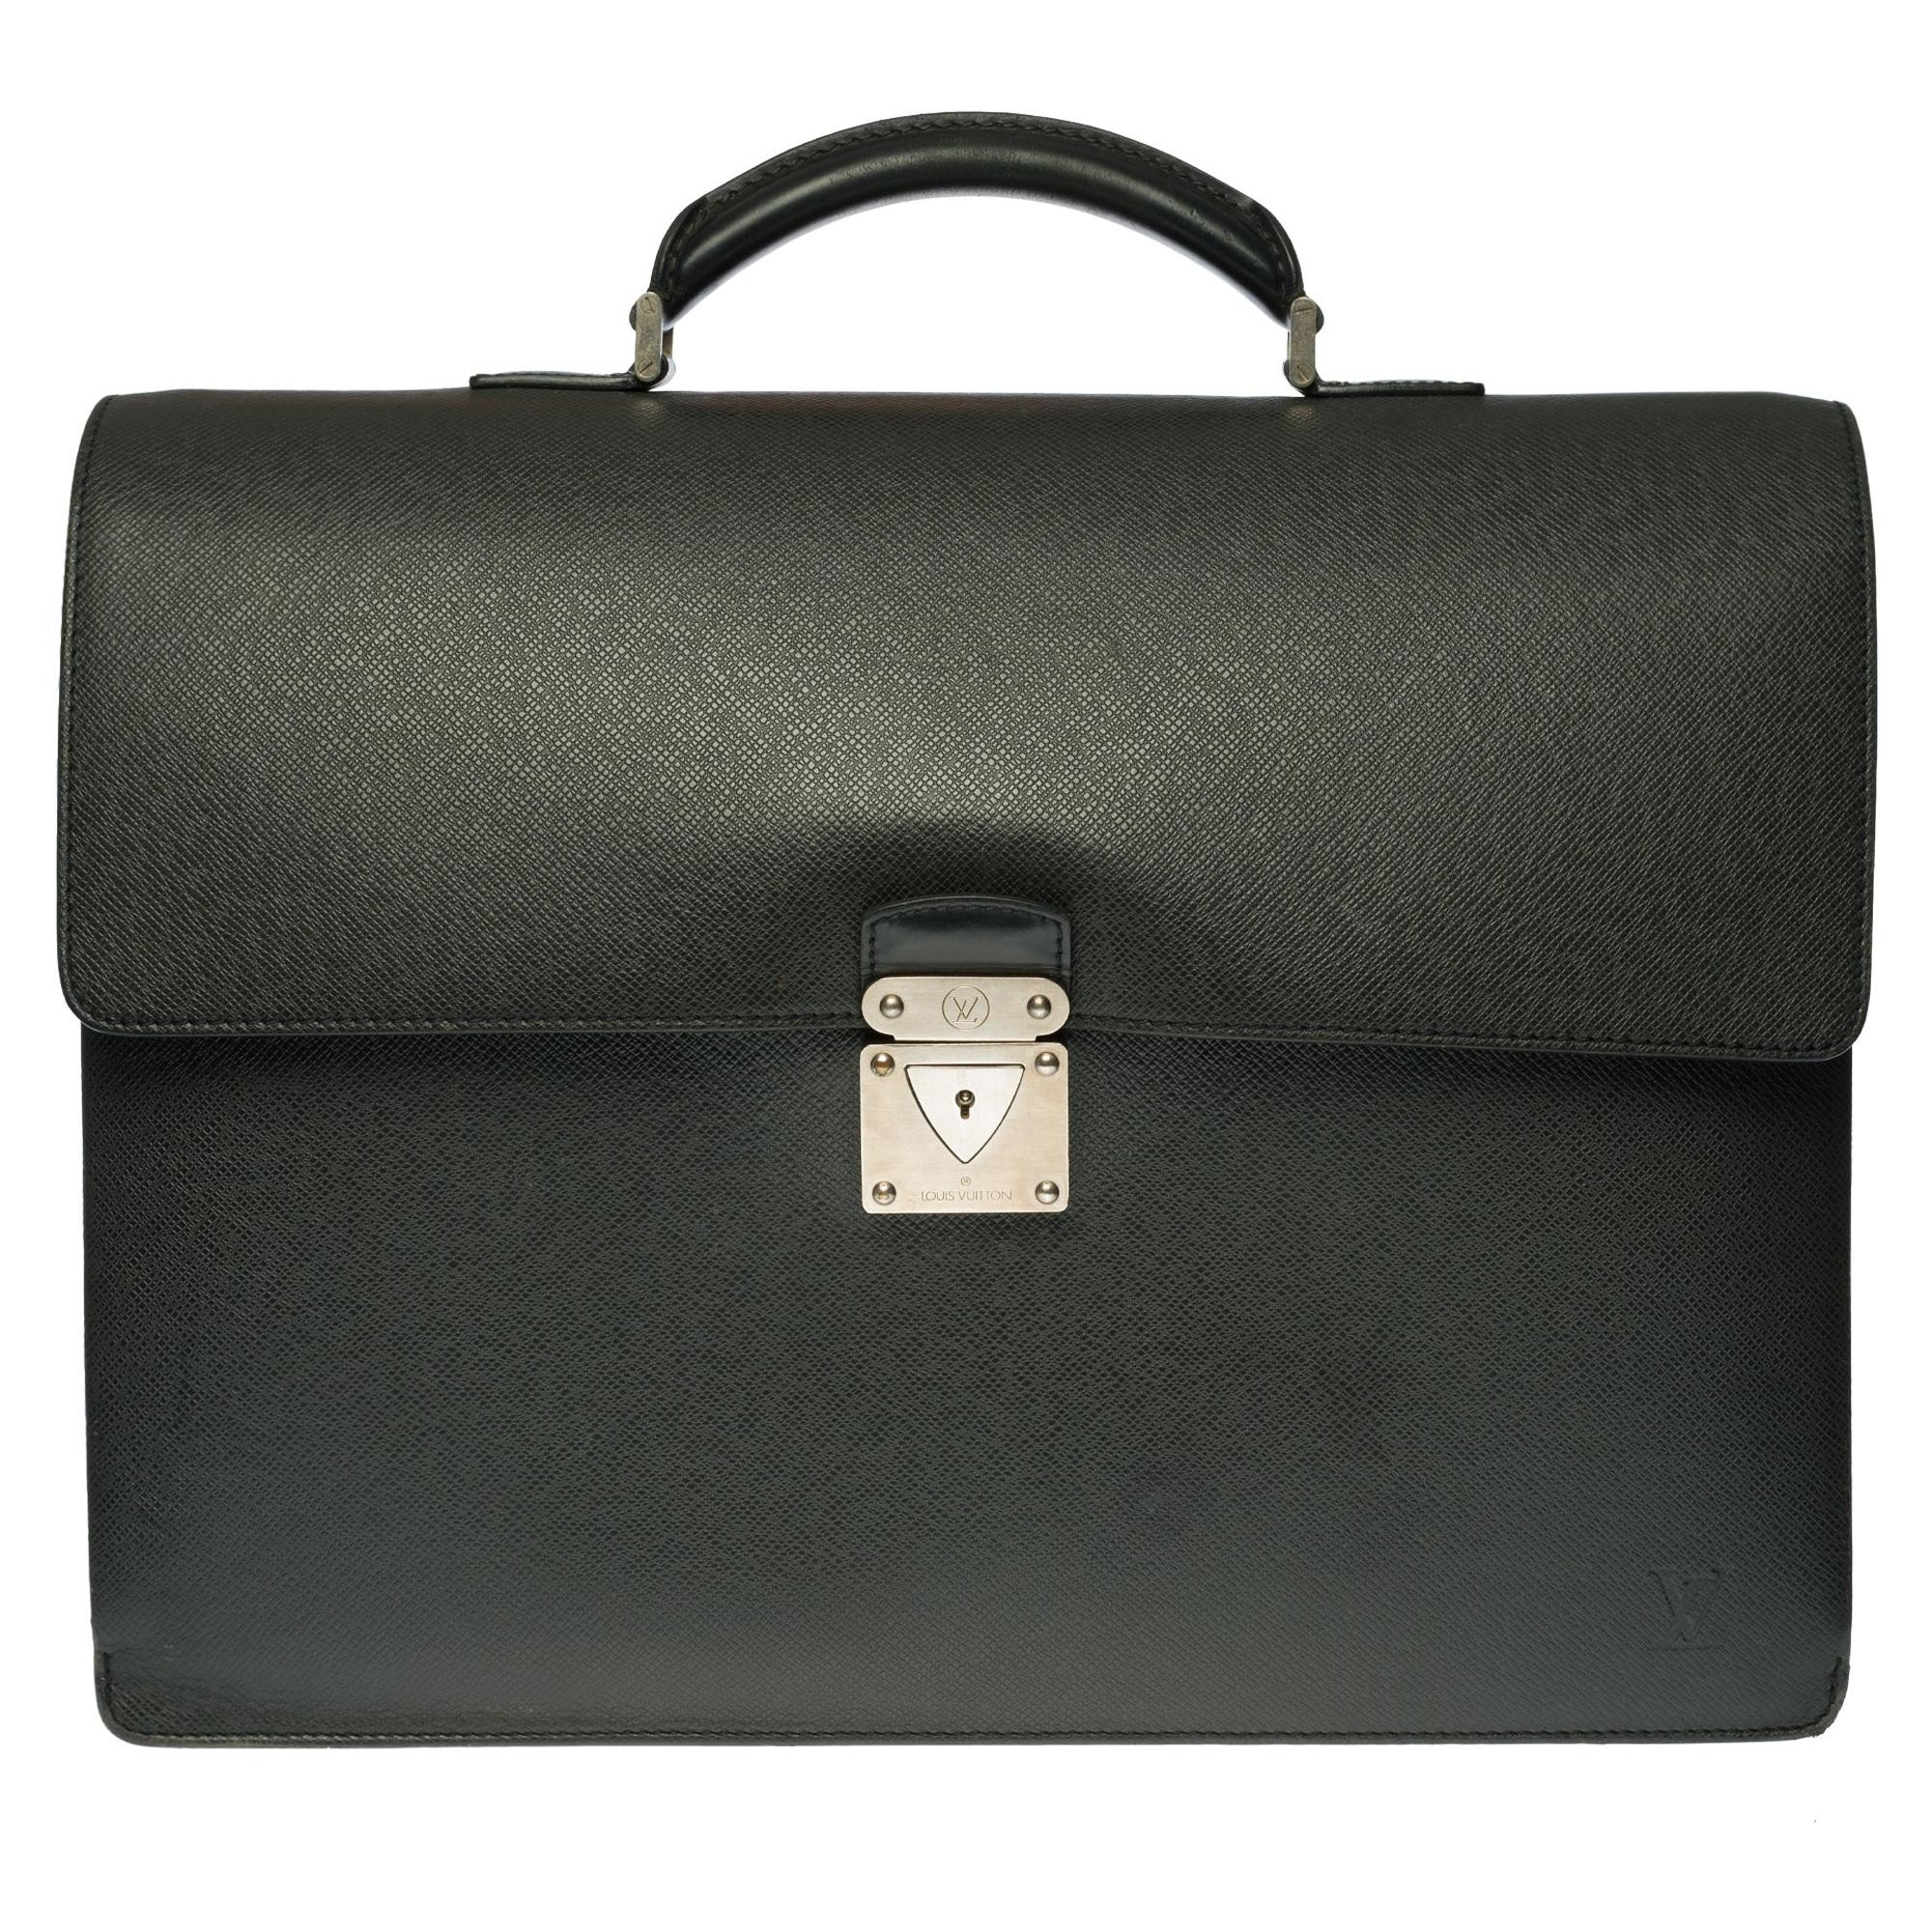 """Louis Vuitton """"Laguito"""" Satchel in green Taïga leather and silver hardware"""